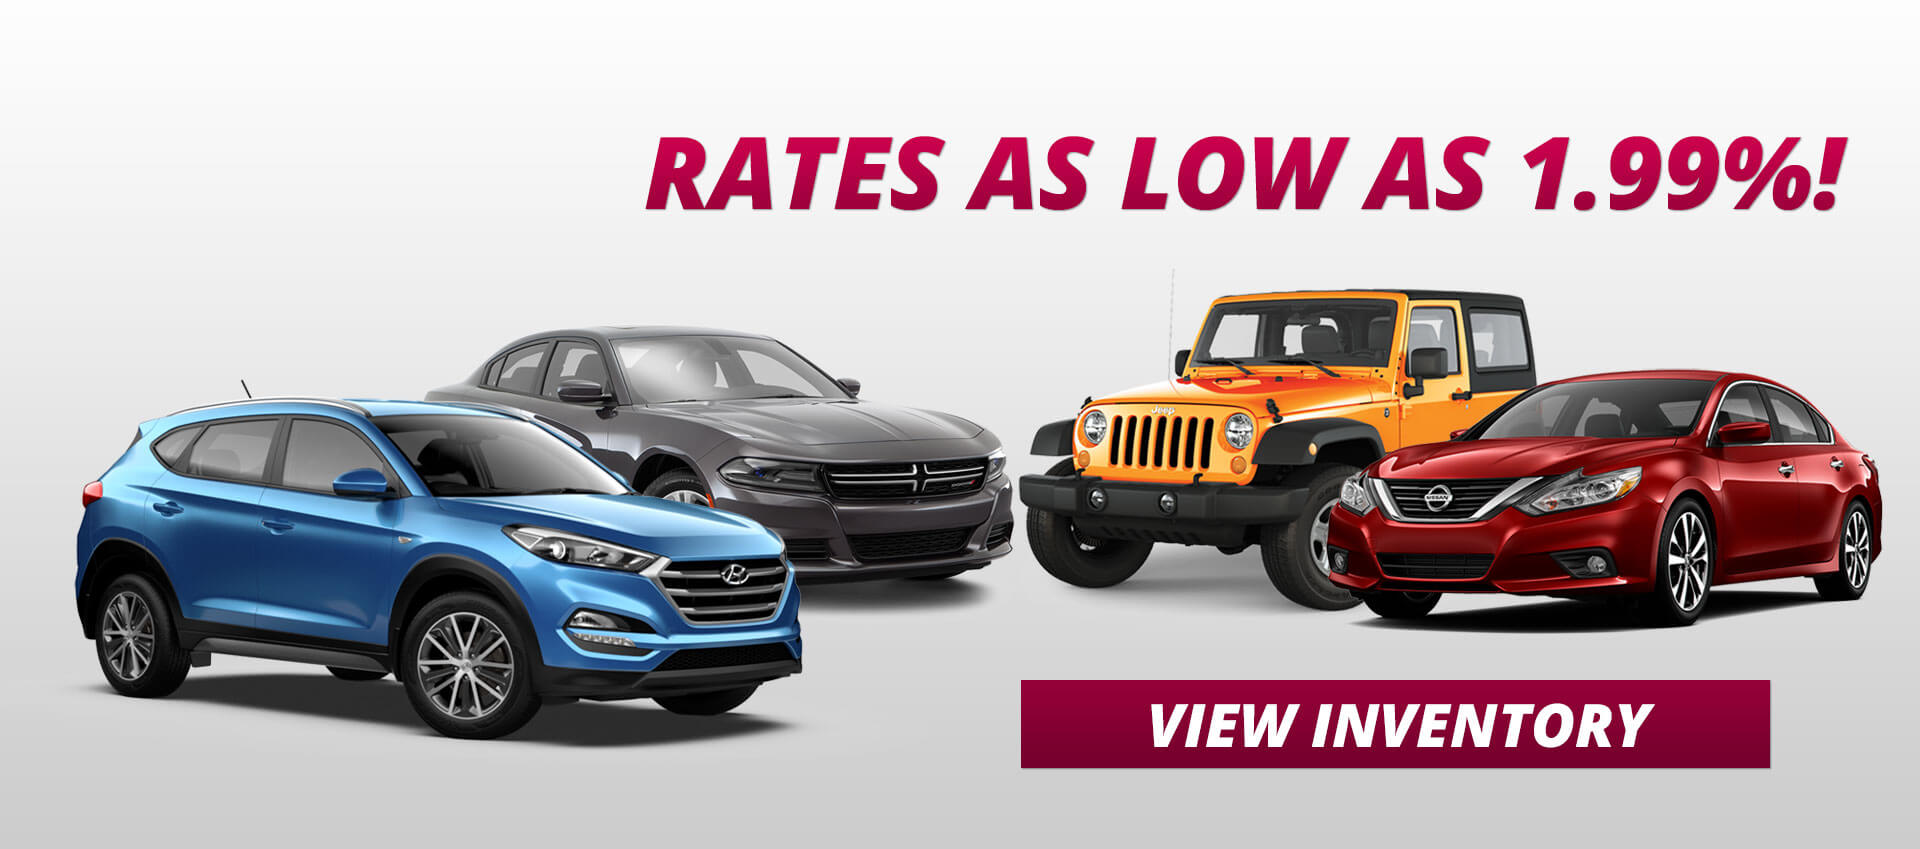 Used car dealer in los angeles quality cars at low for San fernando motors inventory